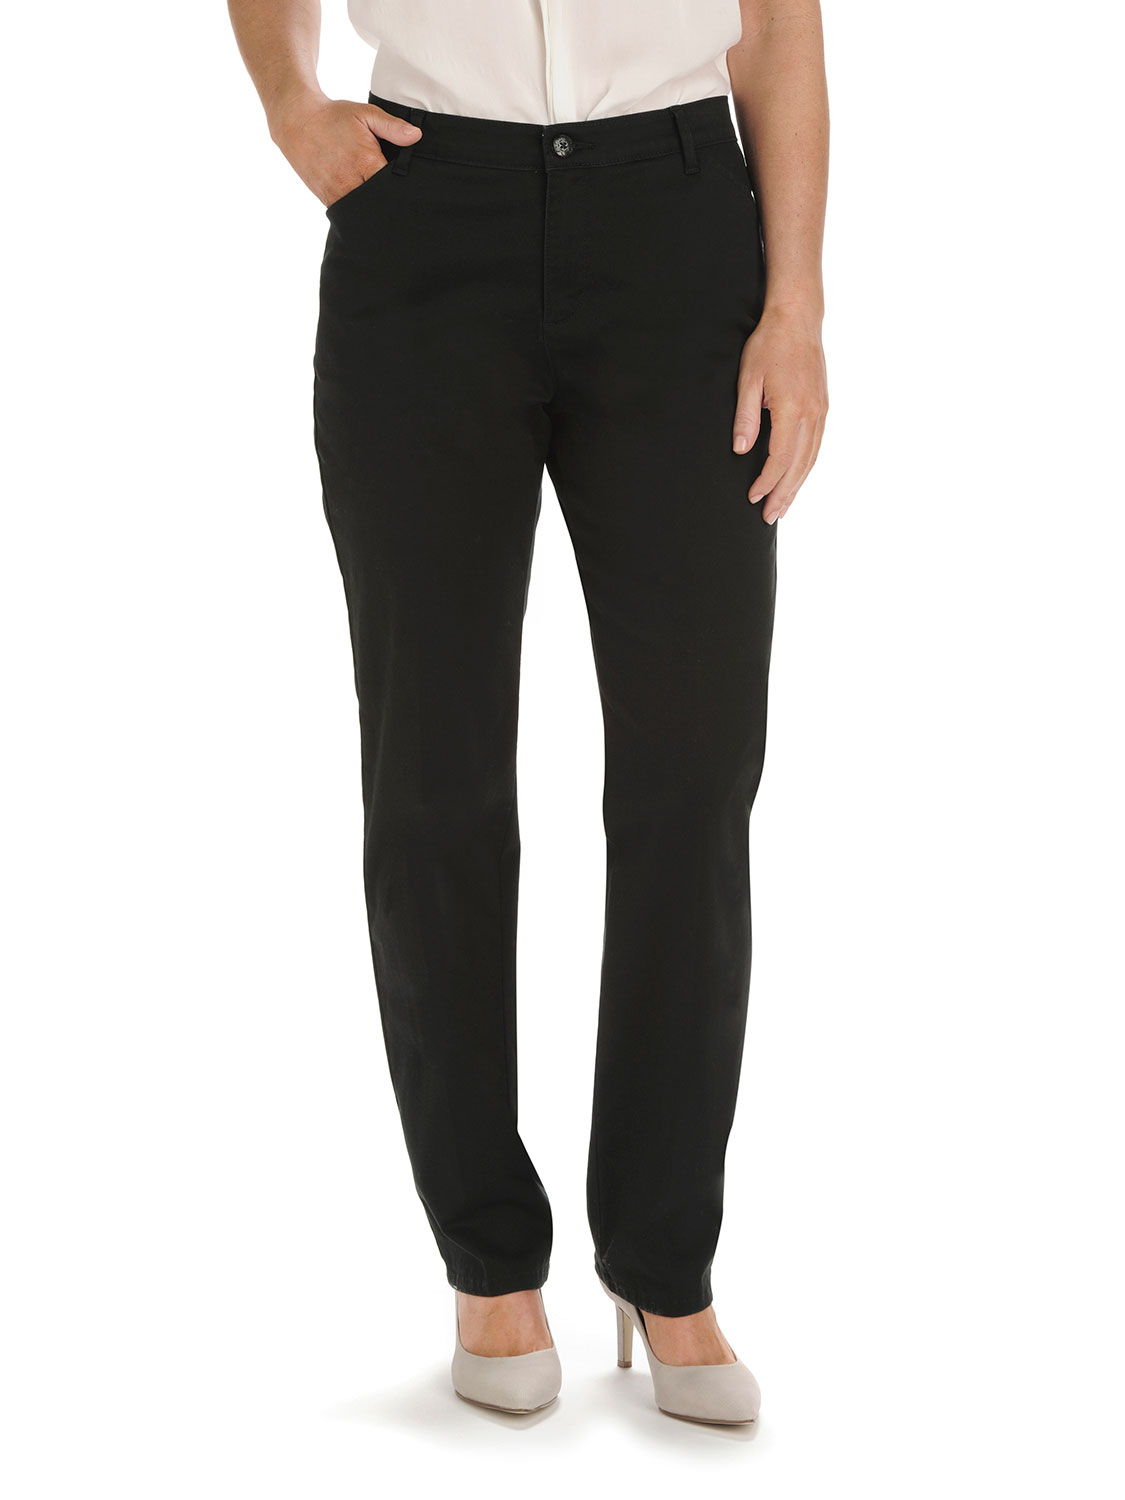 Lee Uniforms Womens Petite Relaxed Fit All Day Straight Leg Pant